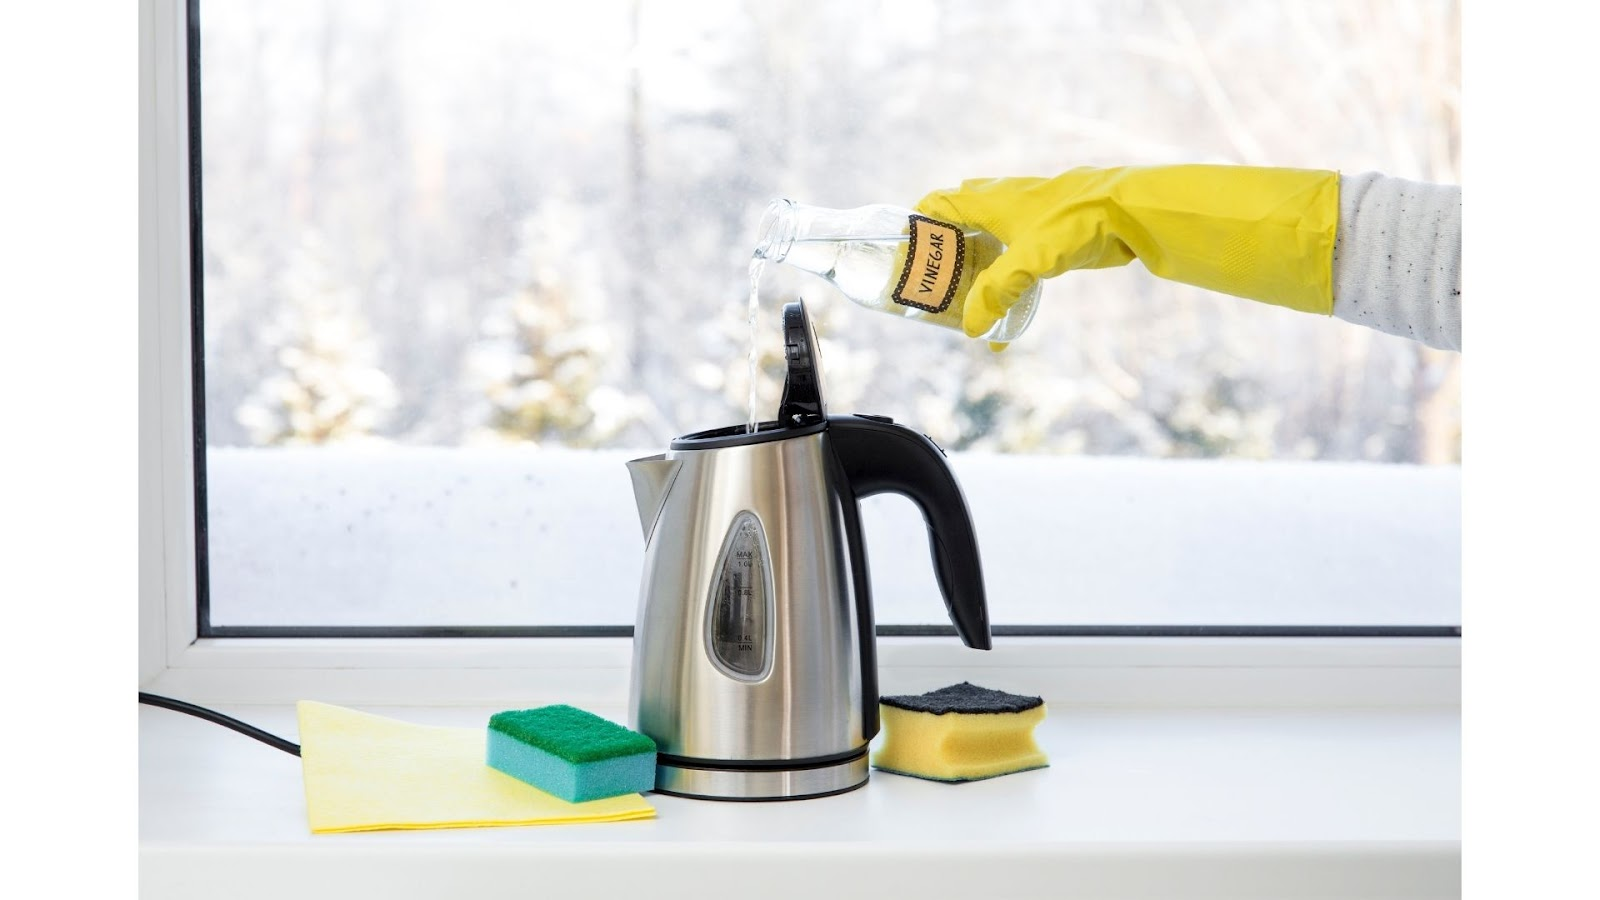 Cleaning Office Kettle